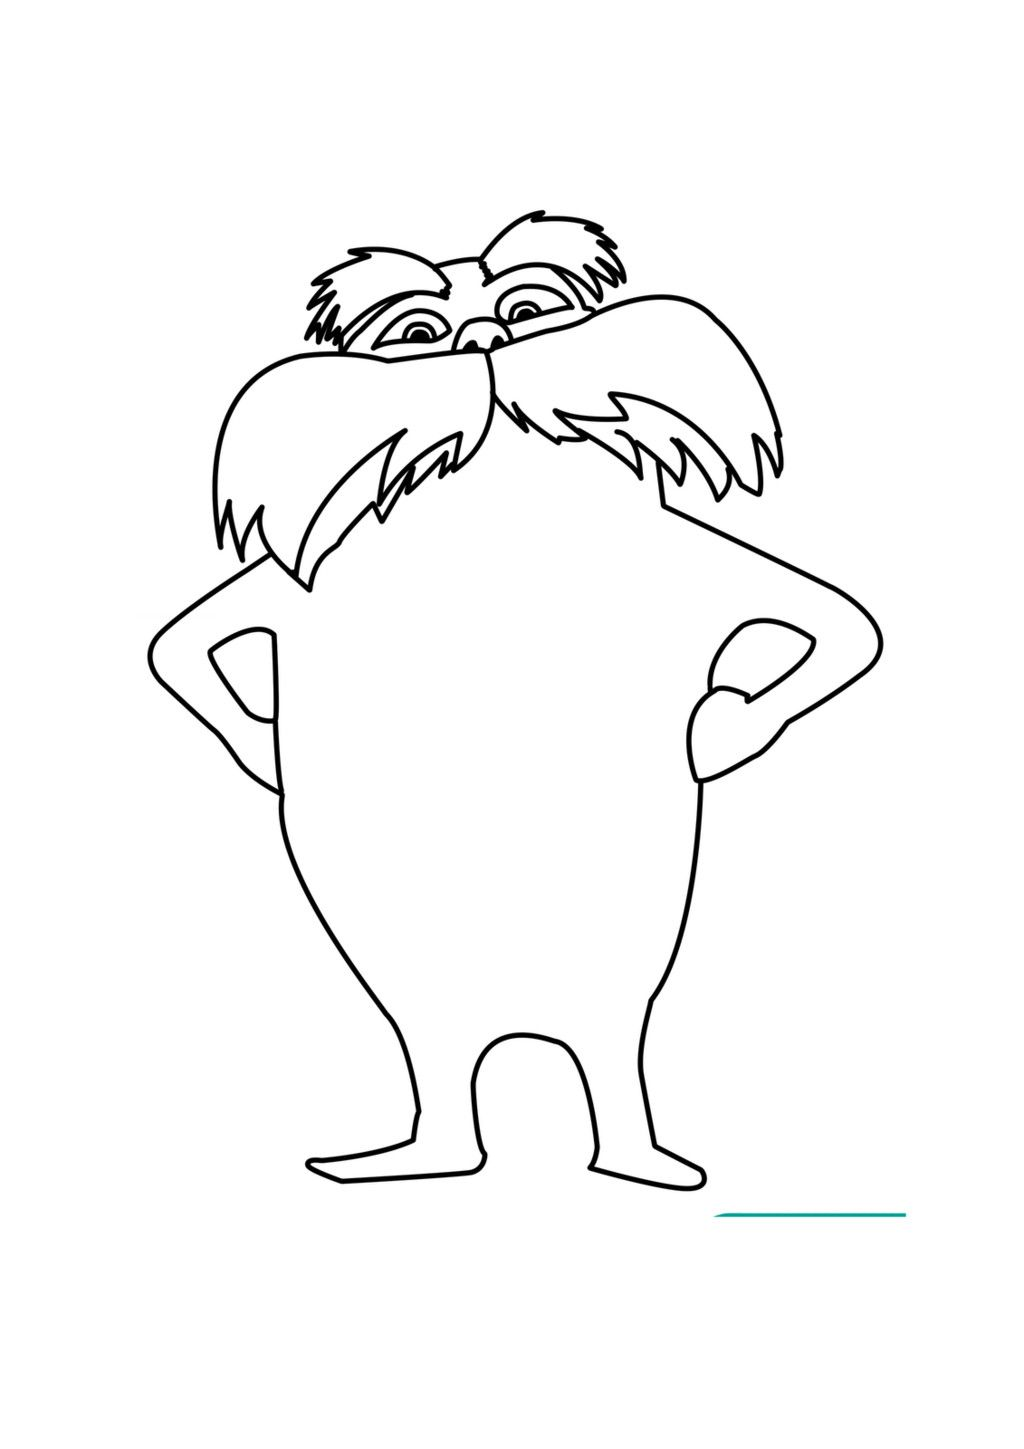 Lorax Coloring Pages With Images Dr Seuss Coloring Pages